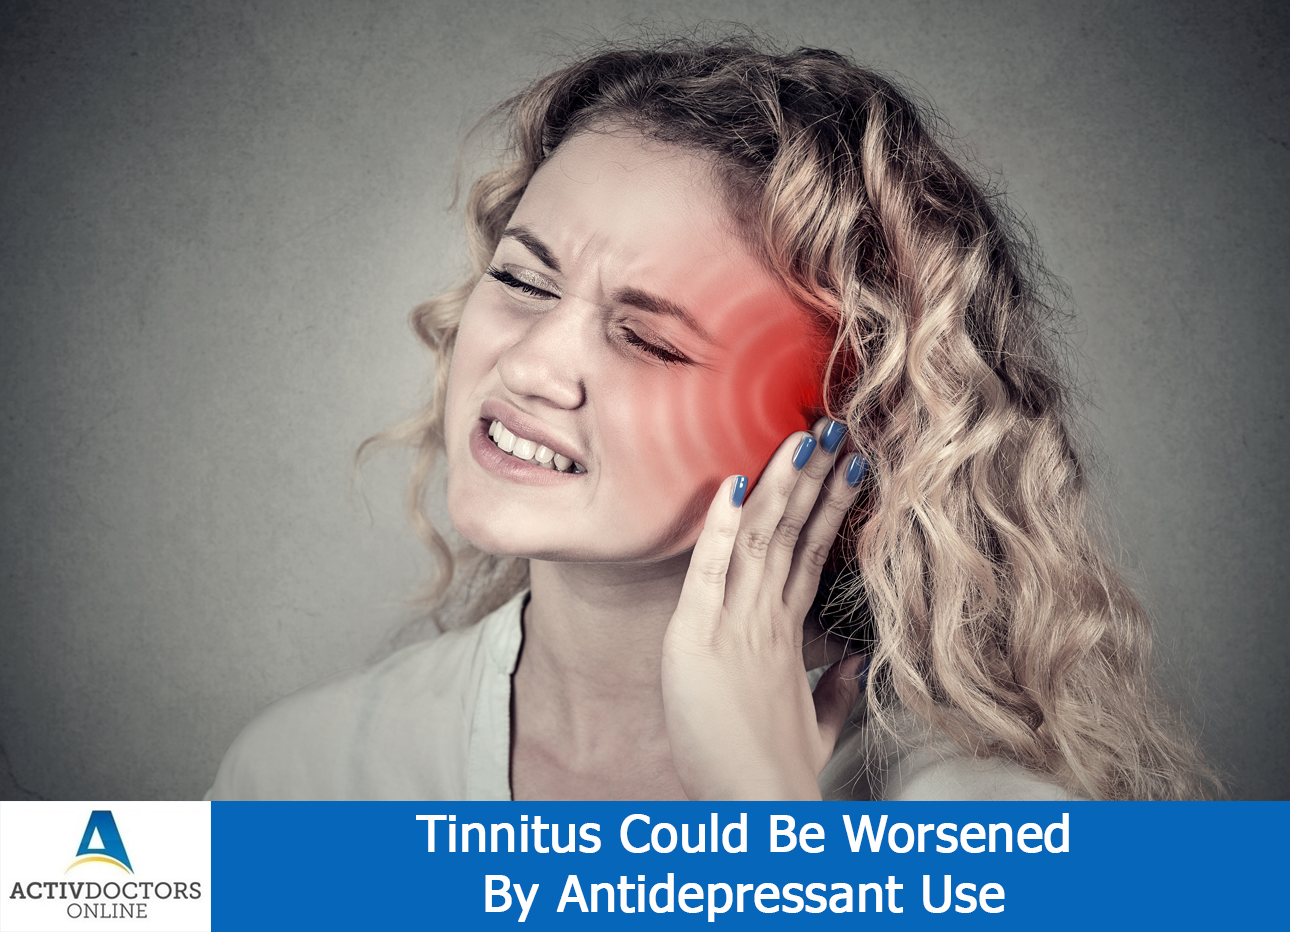 Tinnitus Could Be Worsened By Antidepressant Use